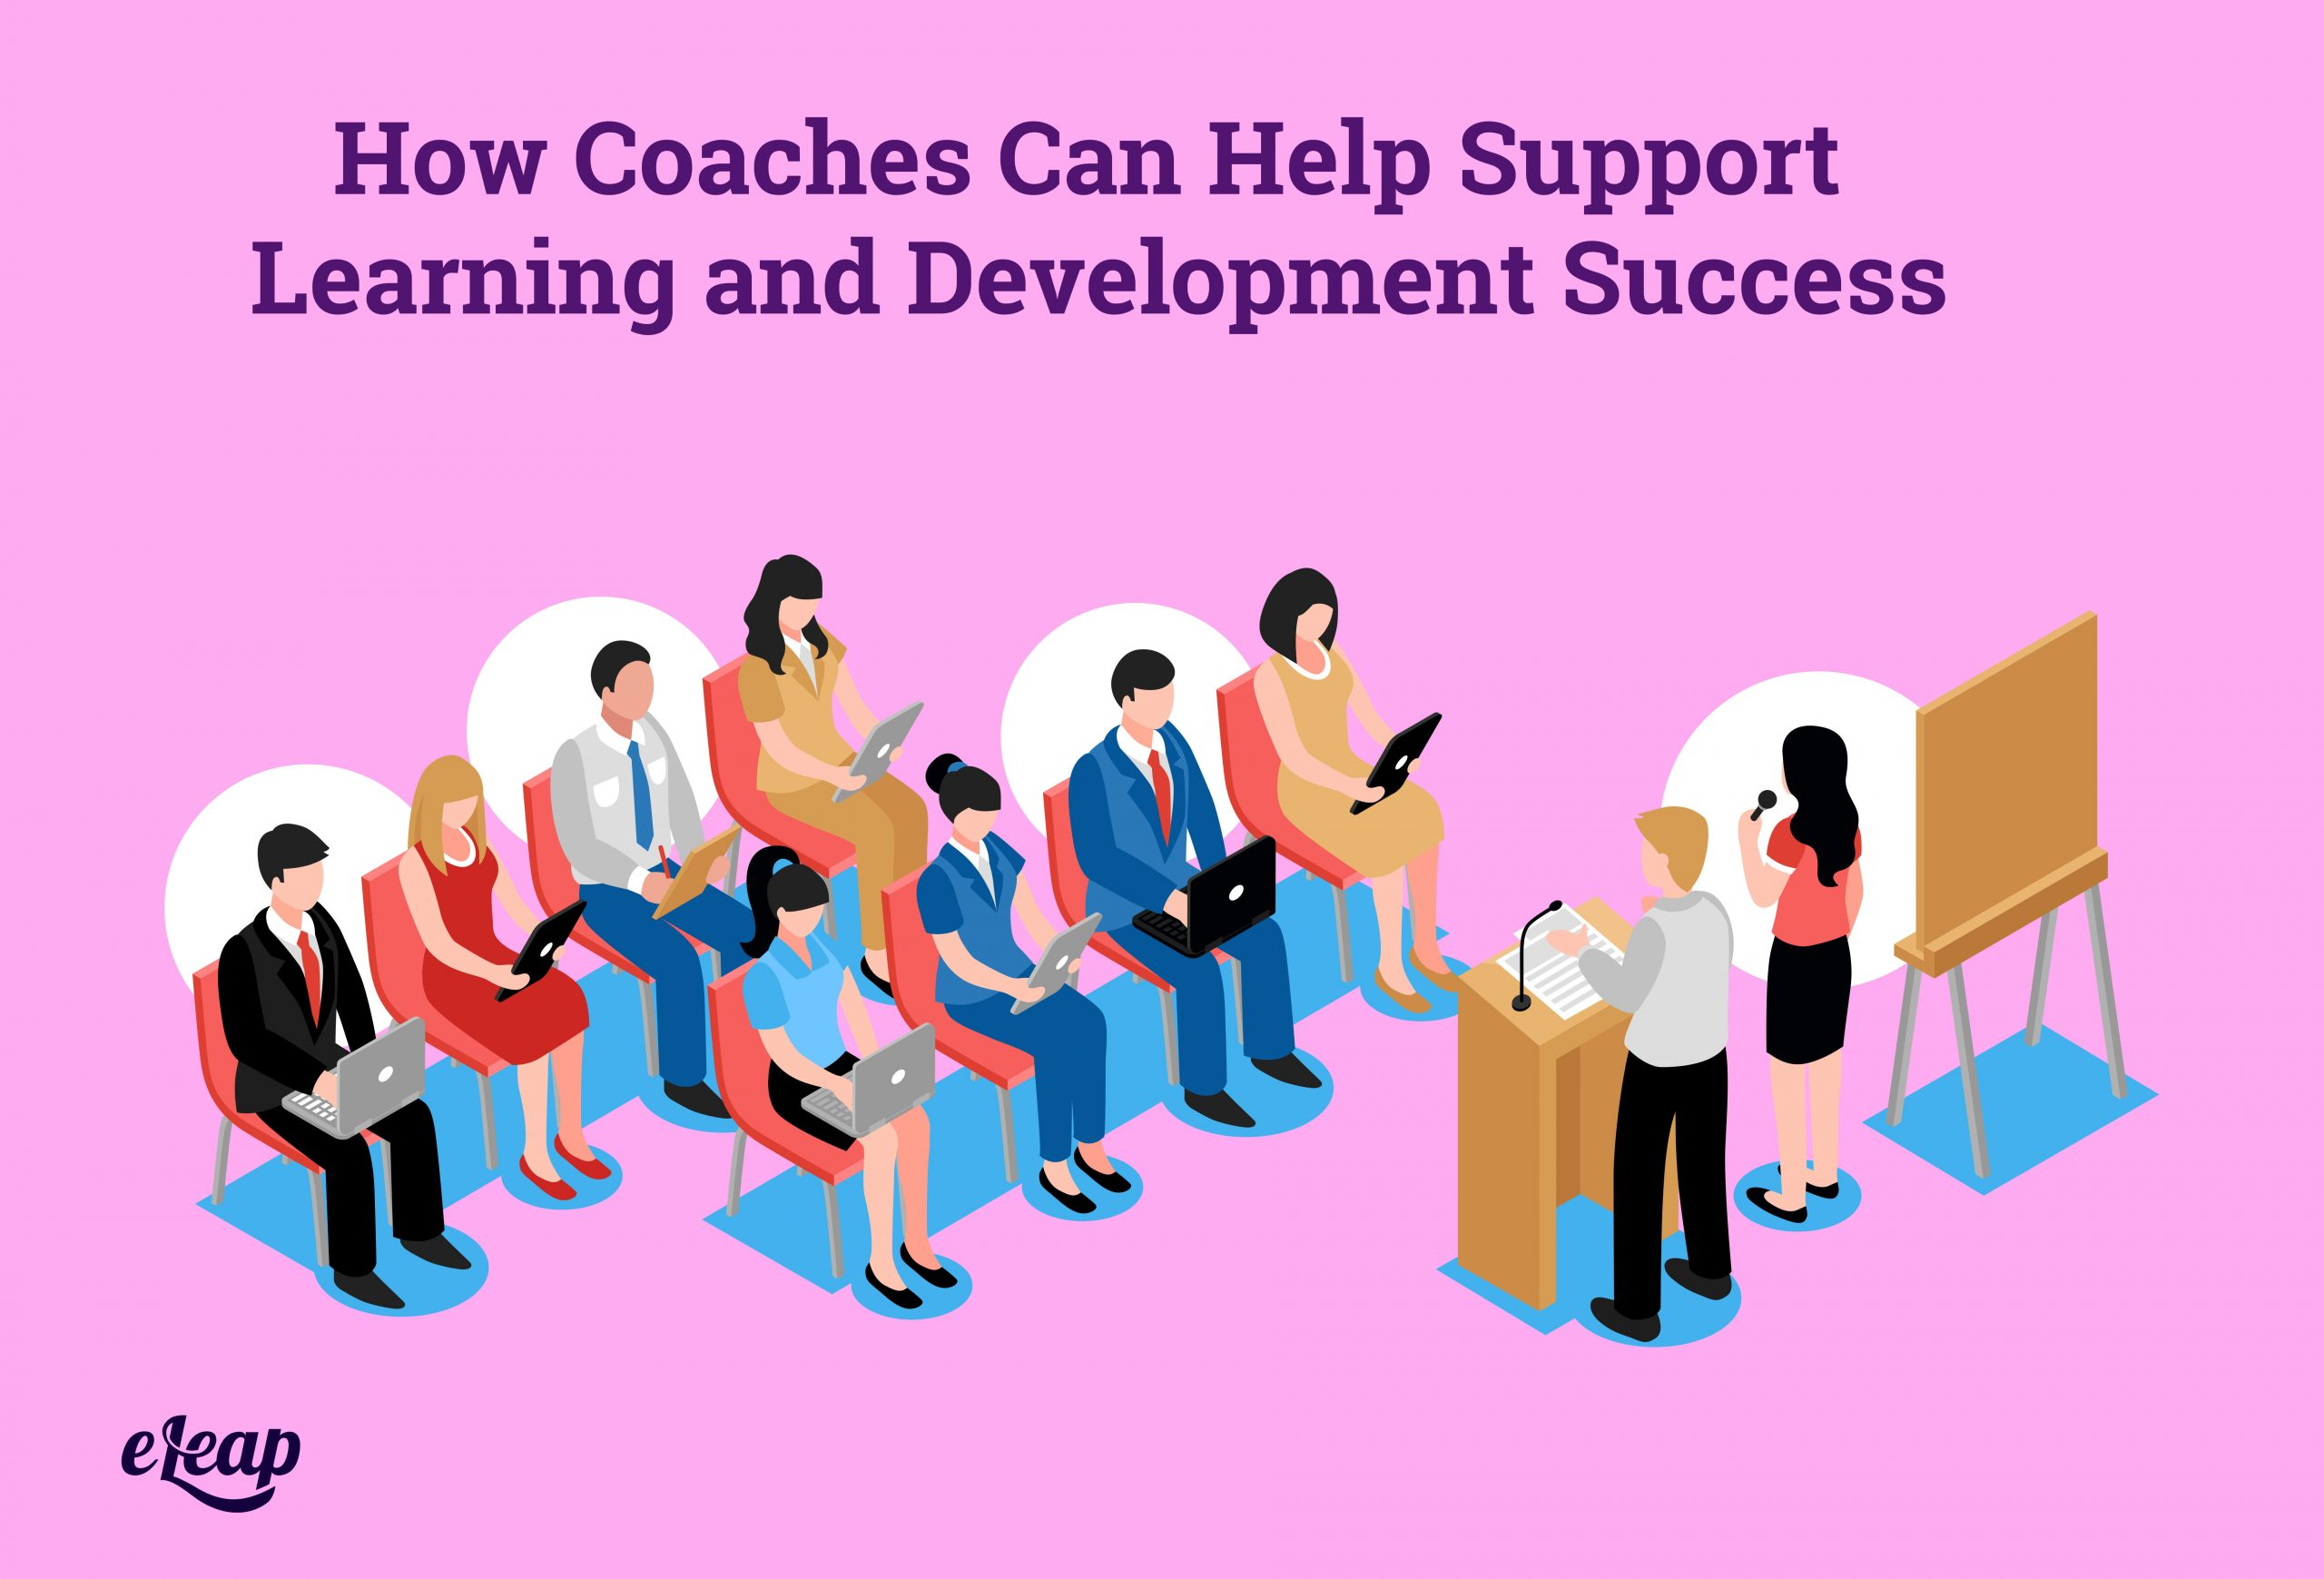 How Coaches Can Help Support Learning and Development Success